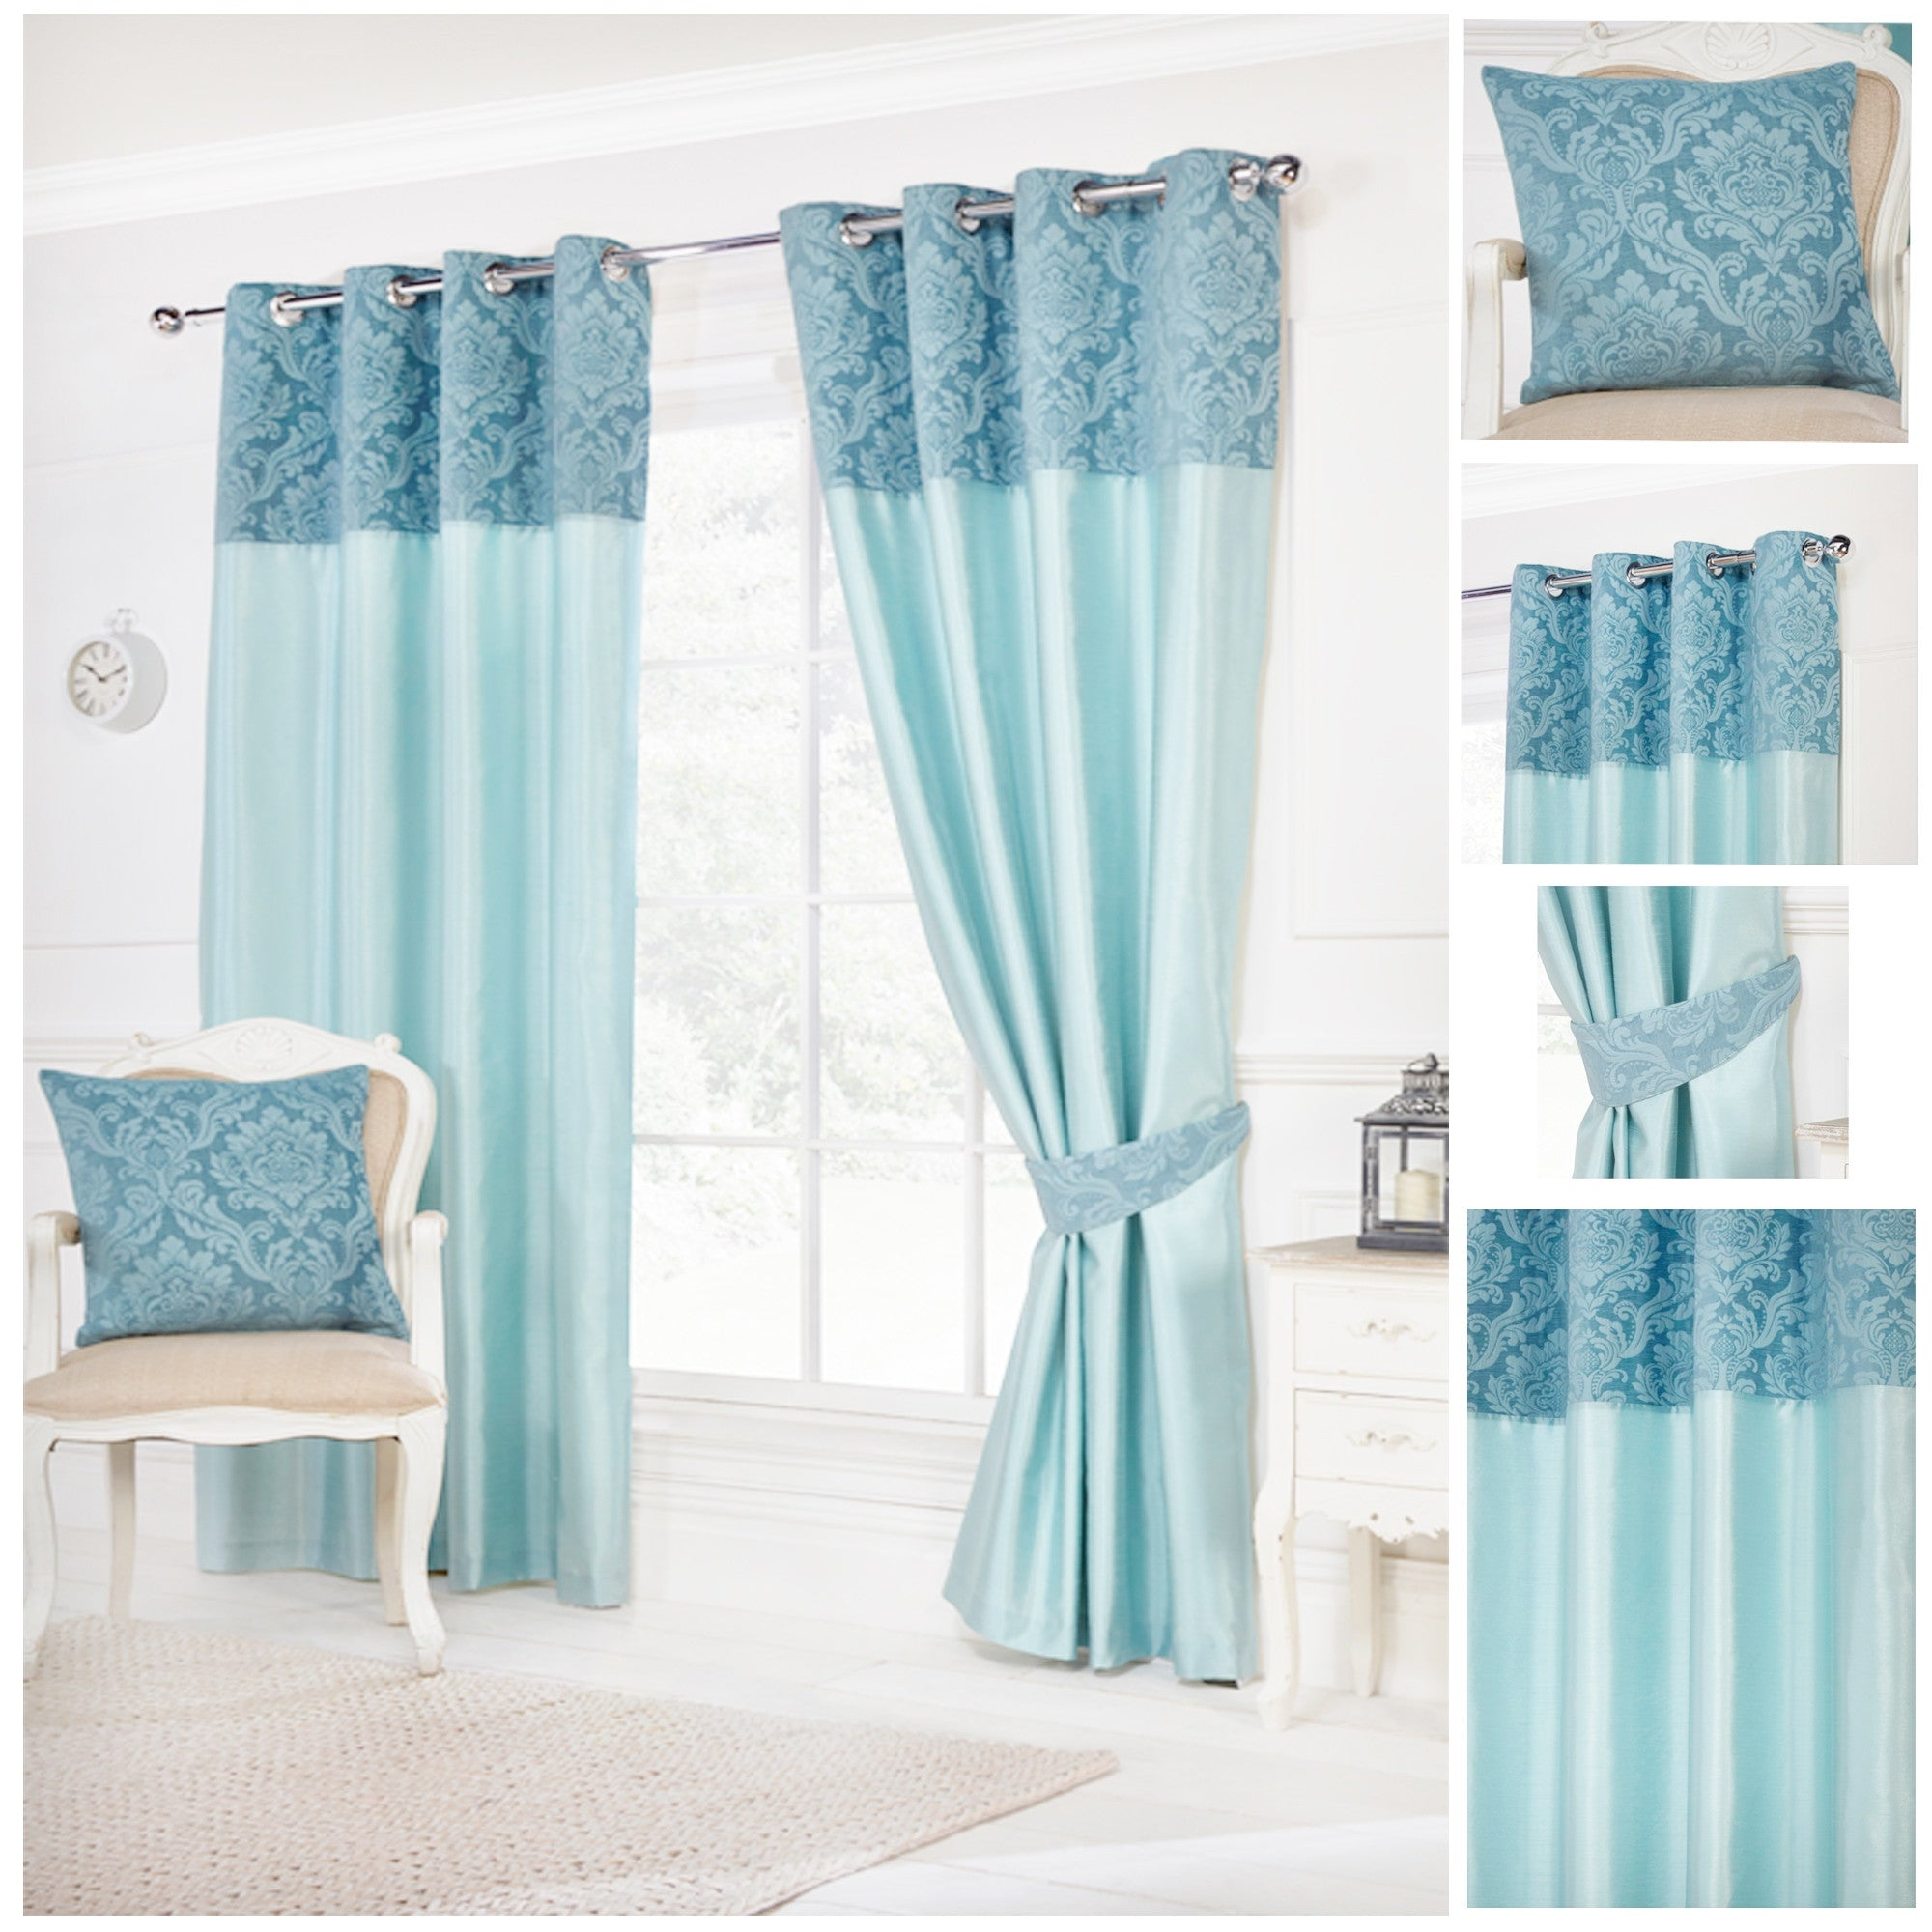 Darcy Teal Bordered Ring Top / Eyelet Fully Readymade Curtains | 4YH ...